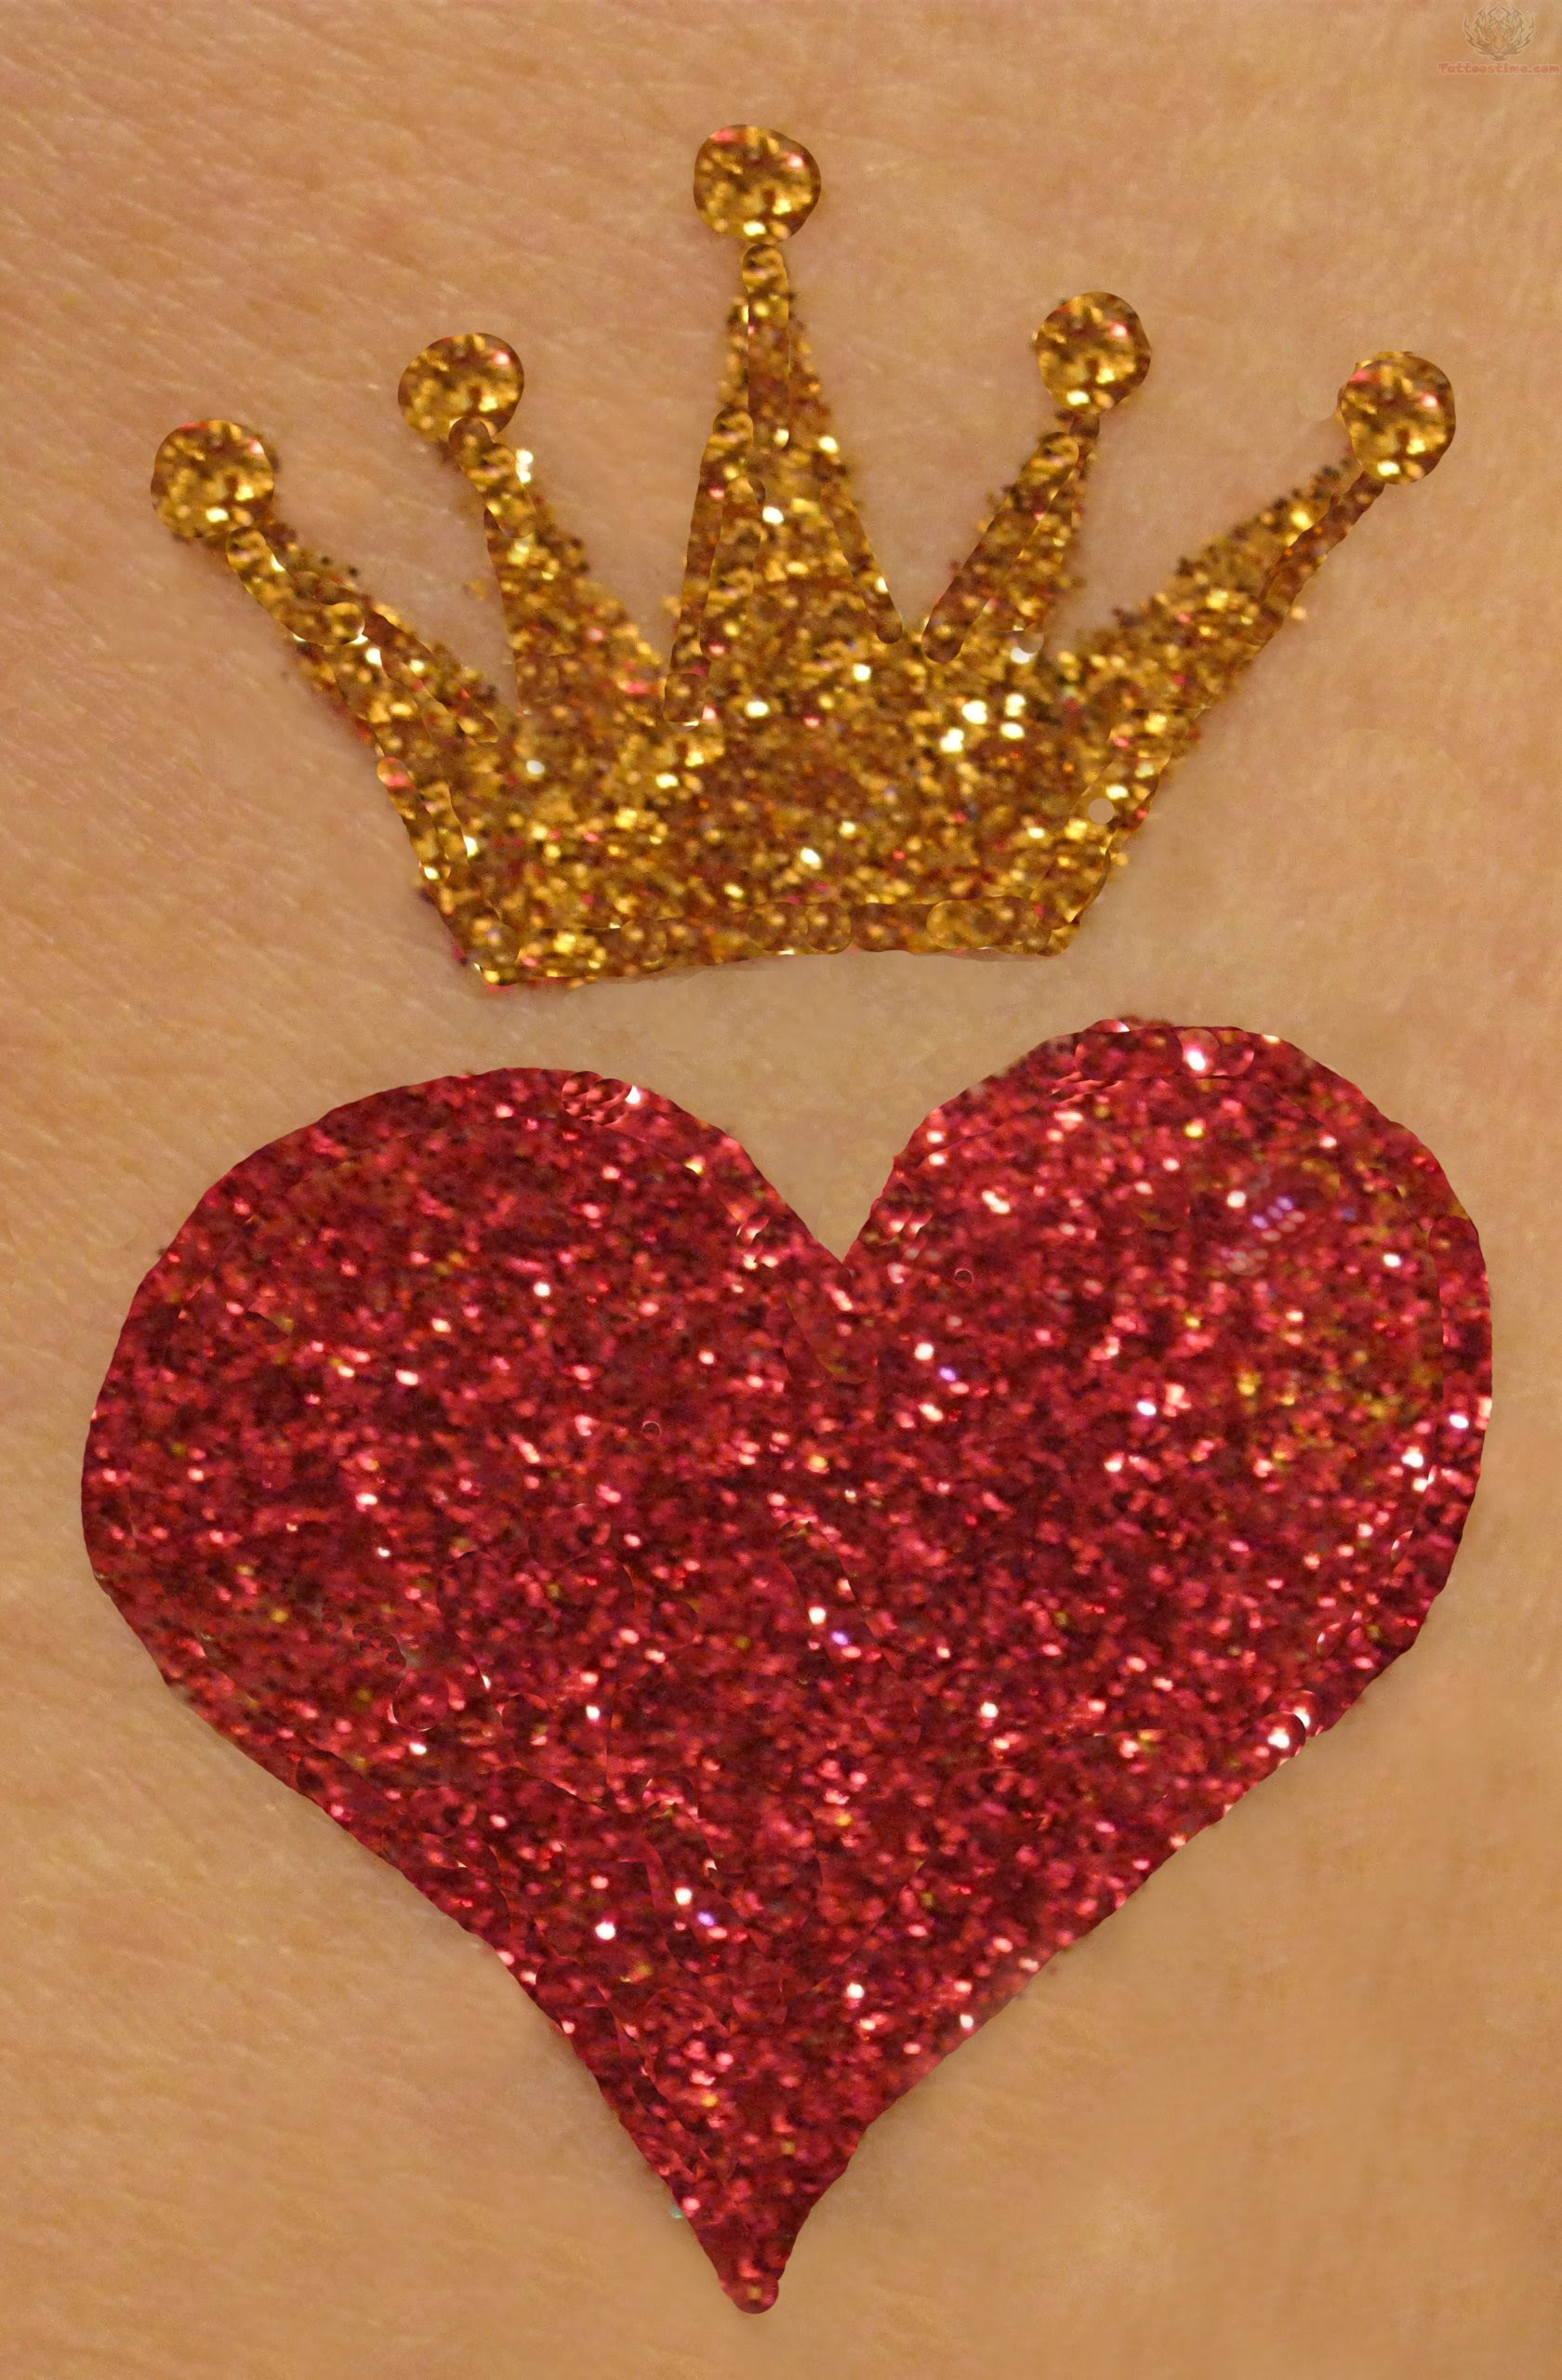 Heart With A Crown Tattoo Design